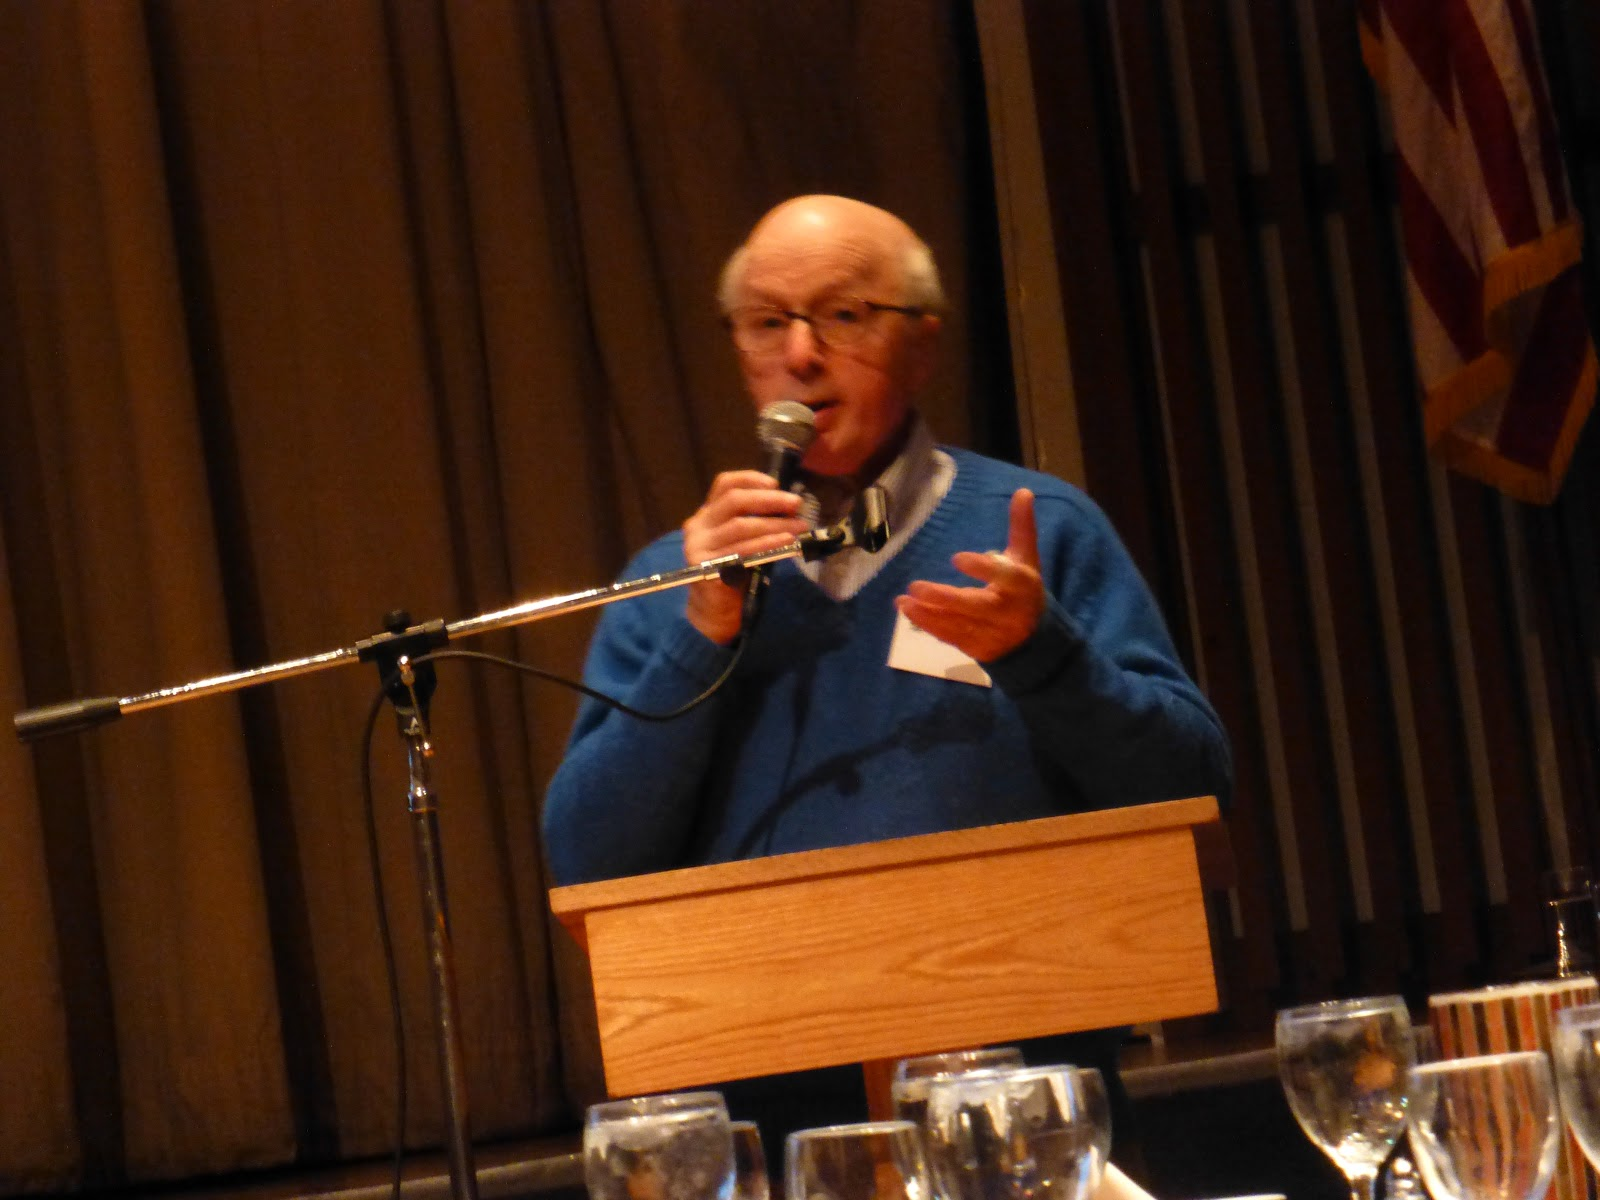 yom kippur war a physician s account   dr brook s presentation about the yom kippur war at the great neck temple long island new york dec